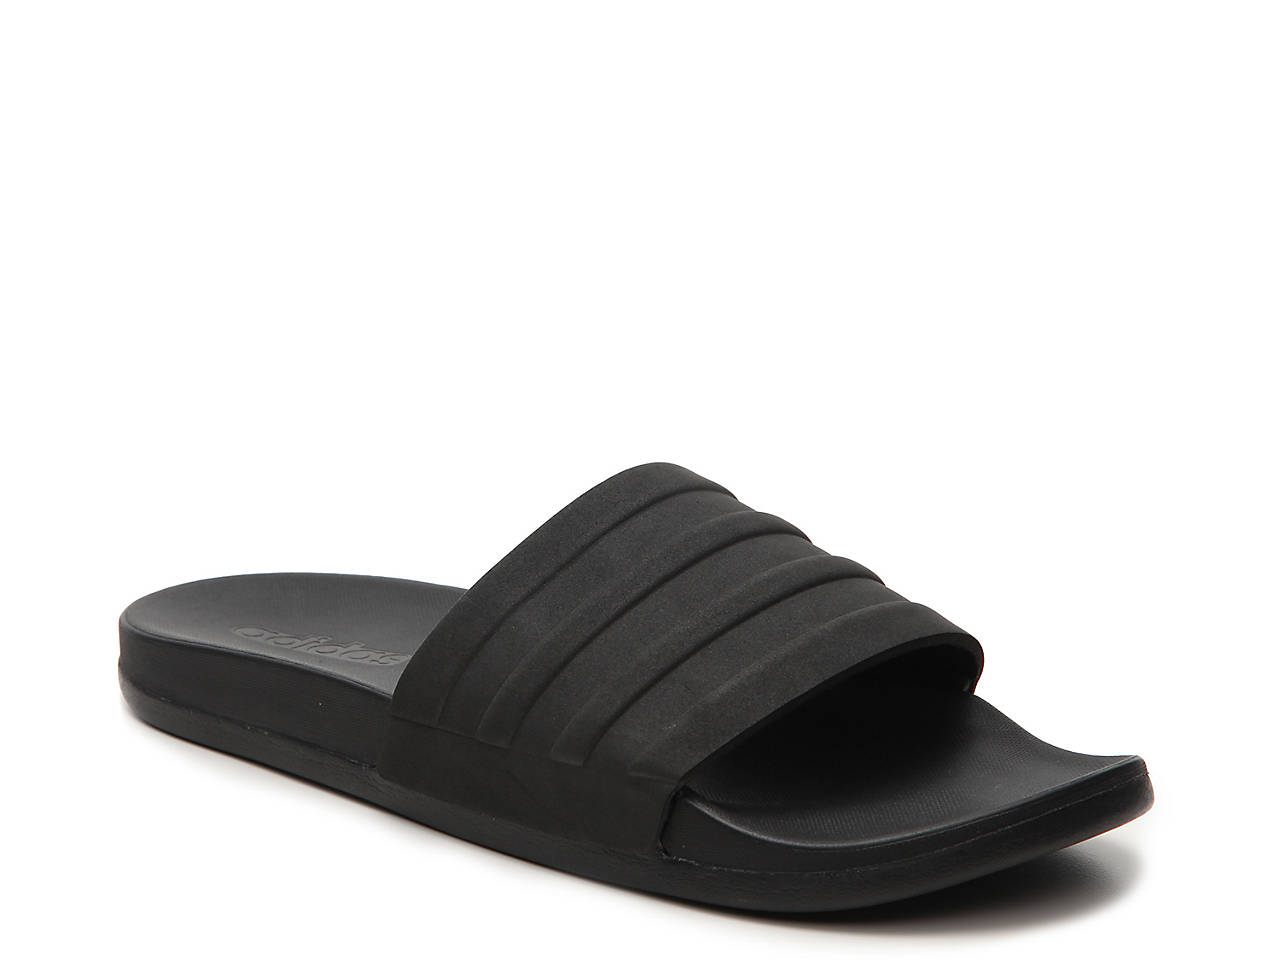 66b680038155 adidas Adilette Cloudfoam Slide Sandal - Men s Men s Shoes